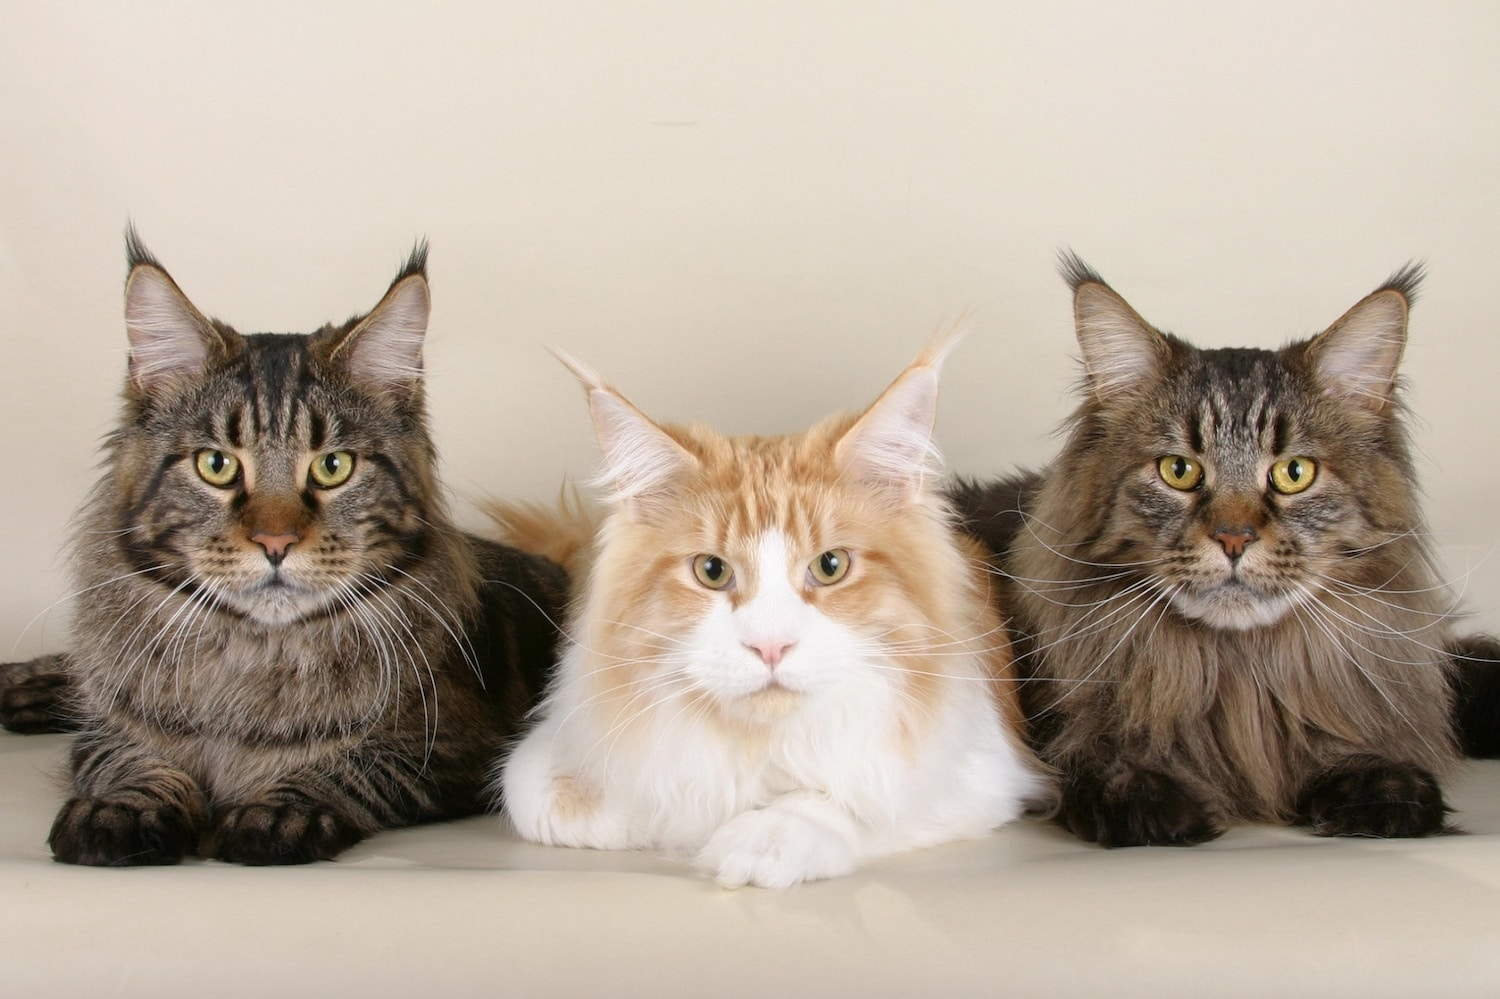 Coronavirus and your pet: CDC states there is no evidence that pets are a source of infection